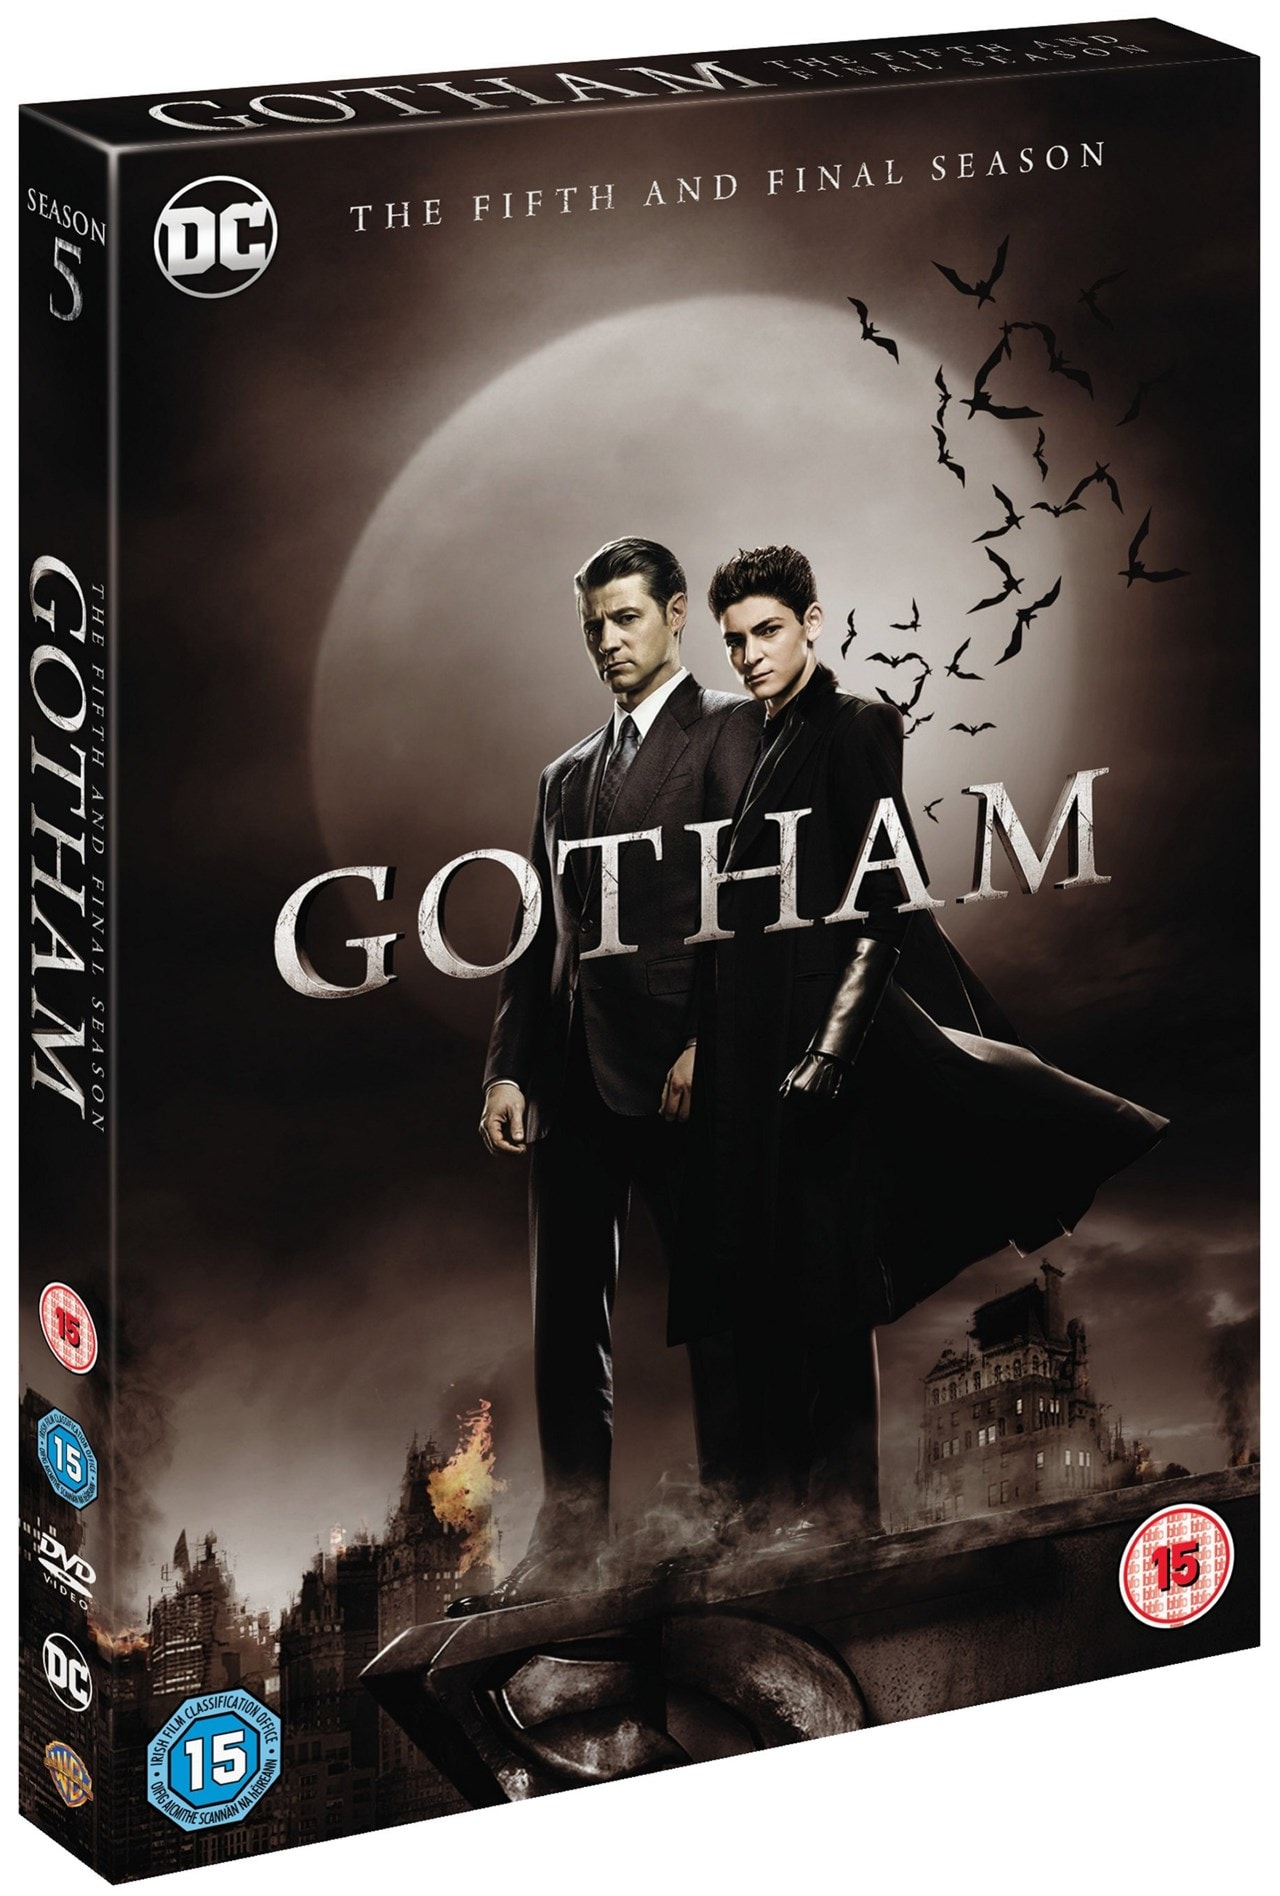 Gotham: The Fifth and Final Season - 2